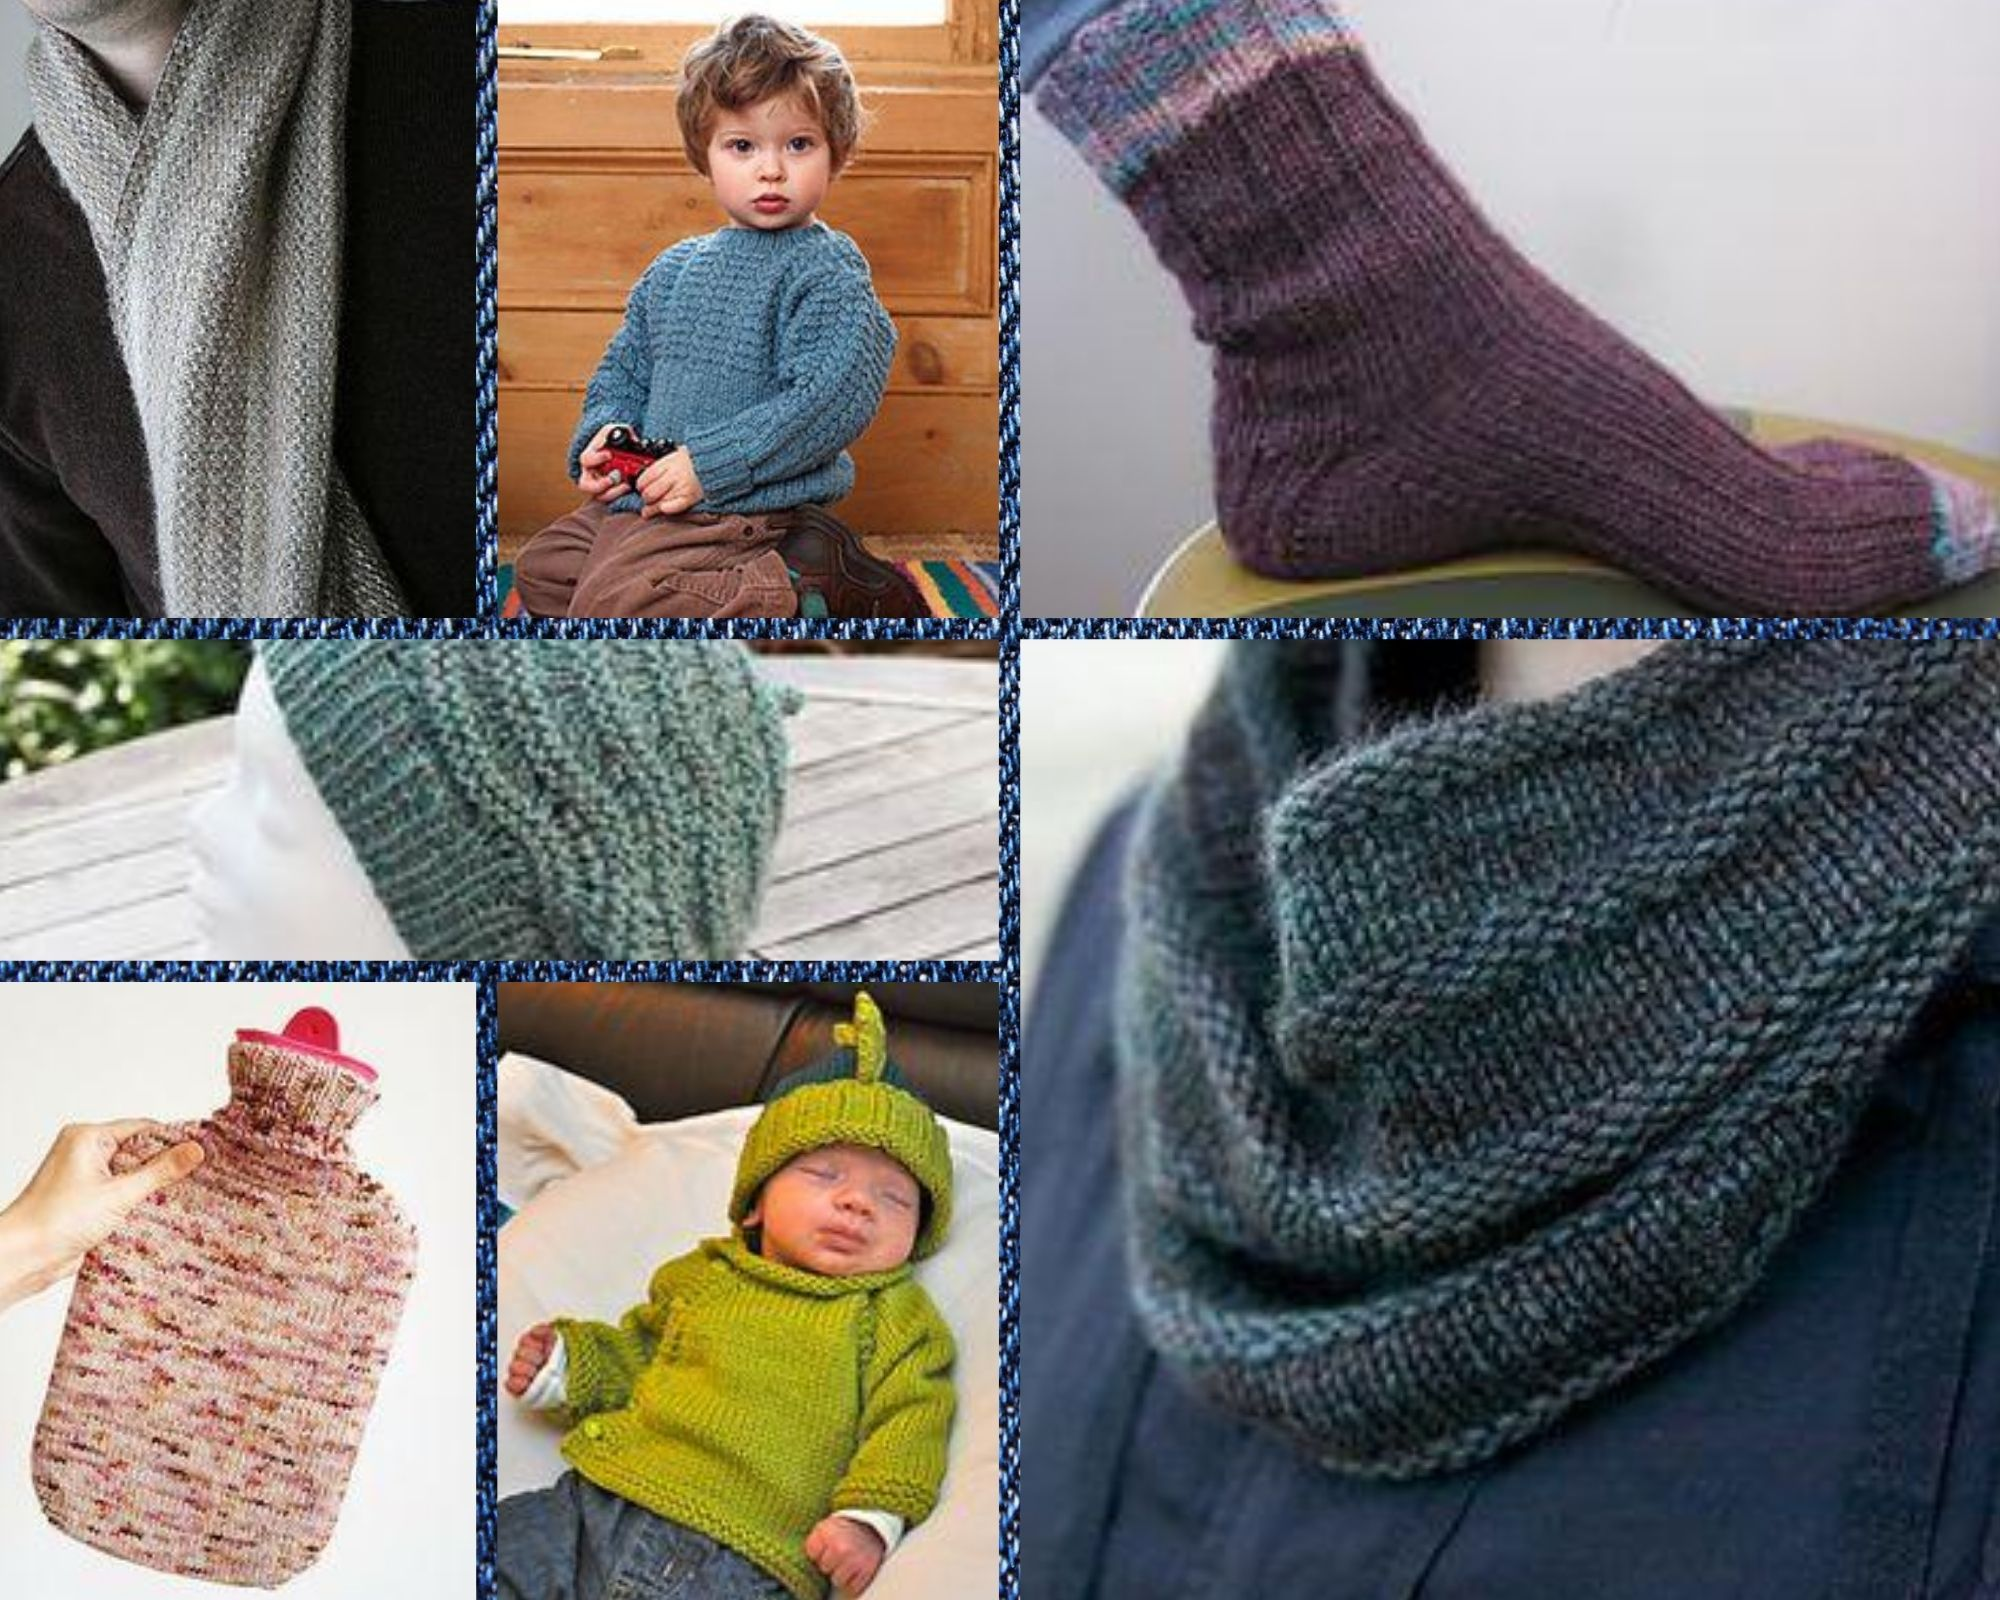 Knitting patterns suitable for the HIY August Mini Yarn Subscription Box